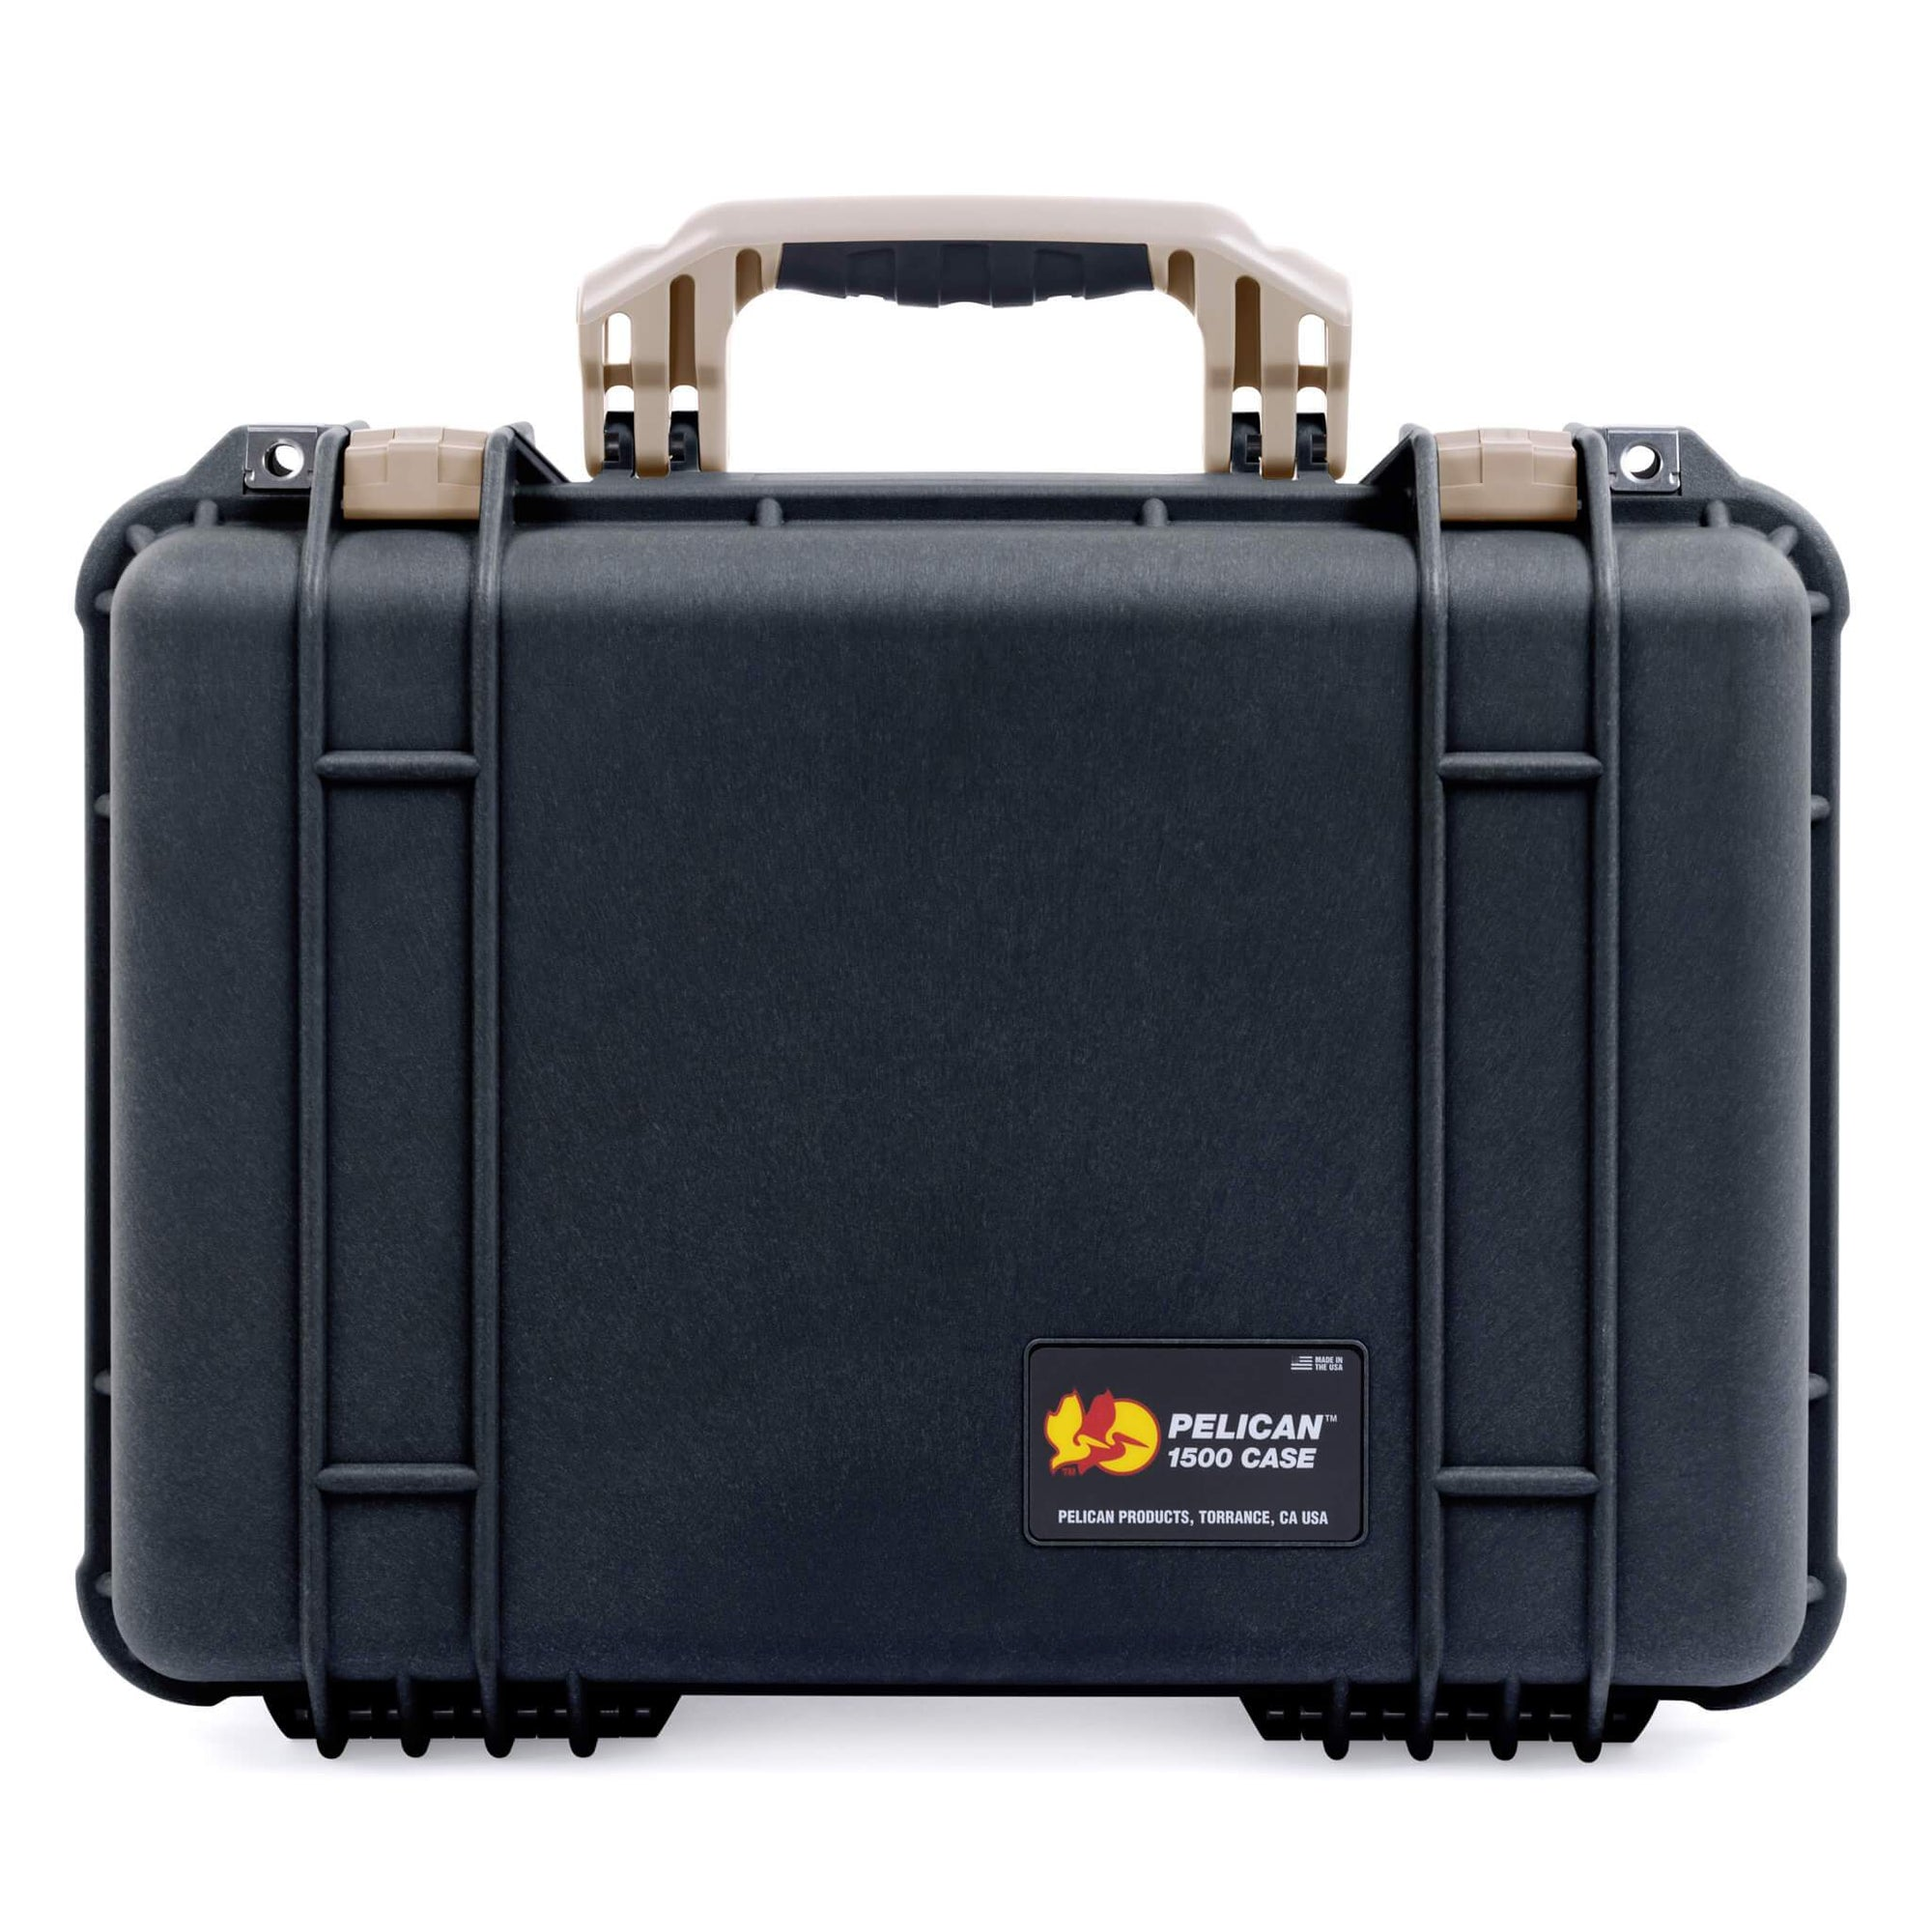 Pelican 1500 Case, Black with Desert Tan Handle & Latches